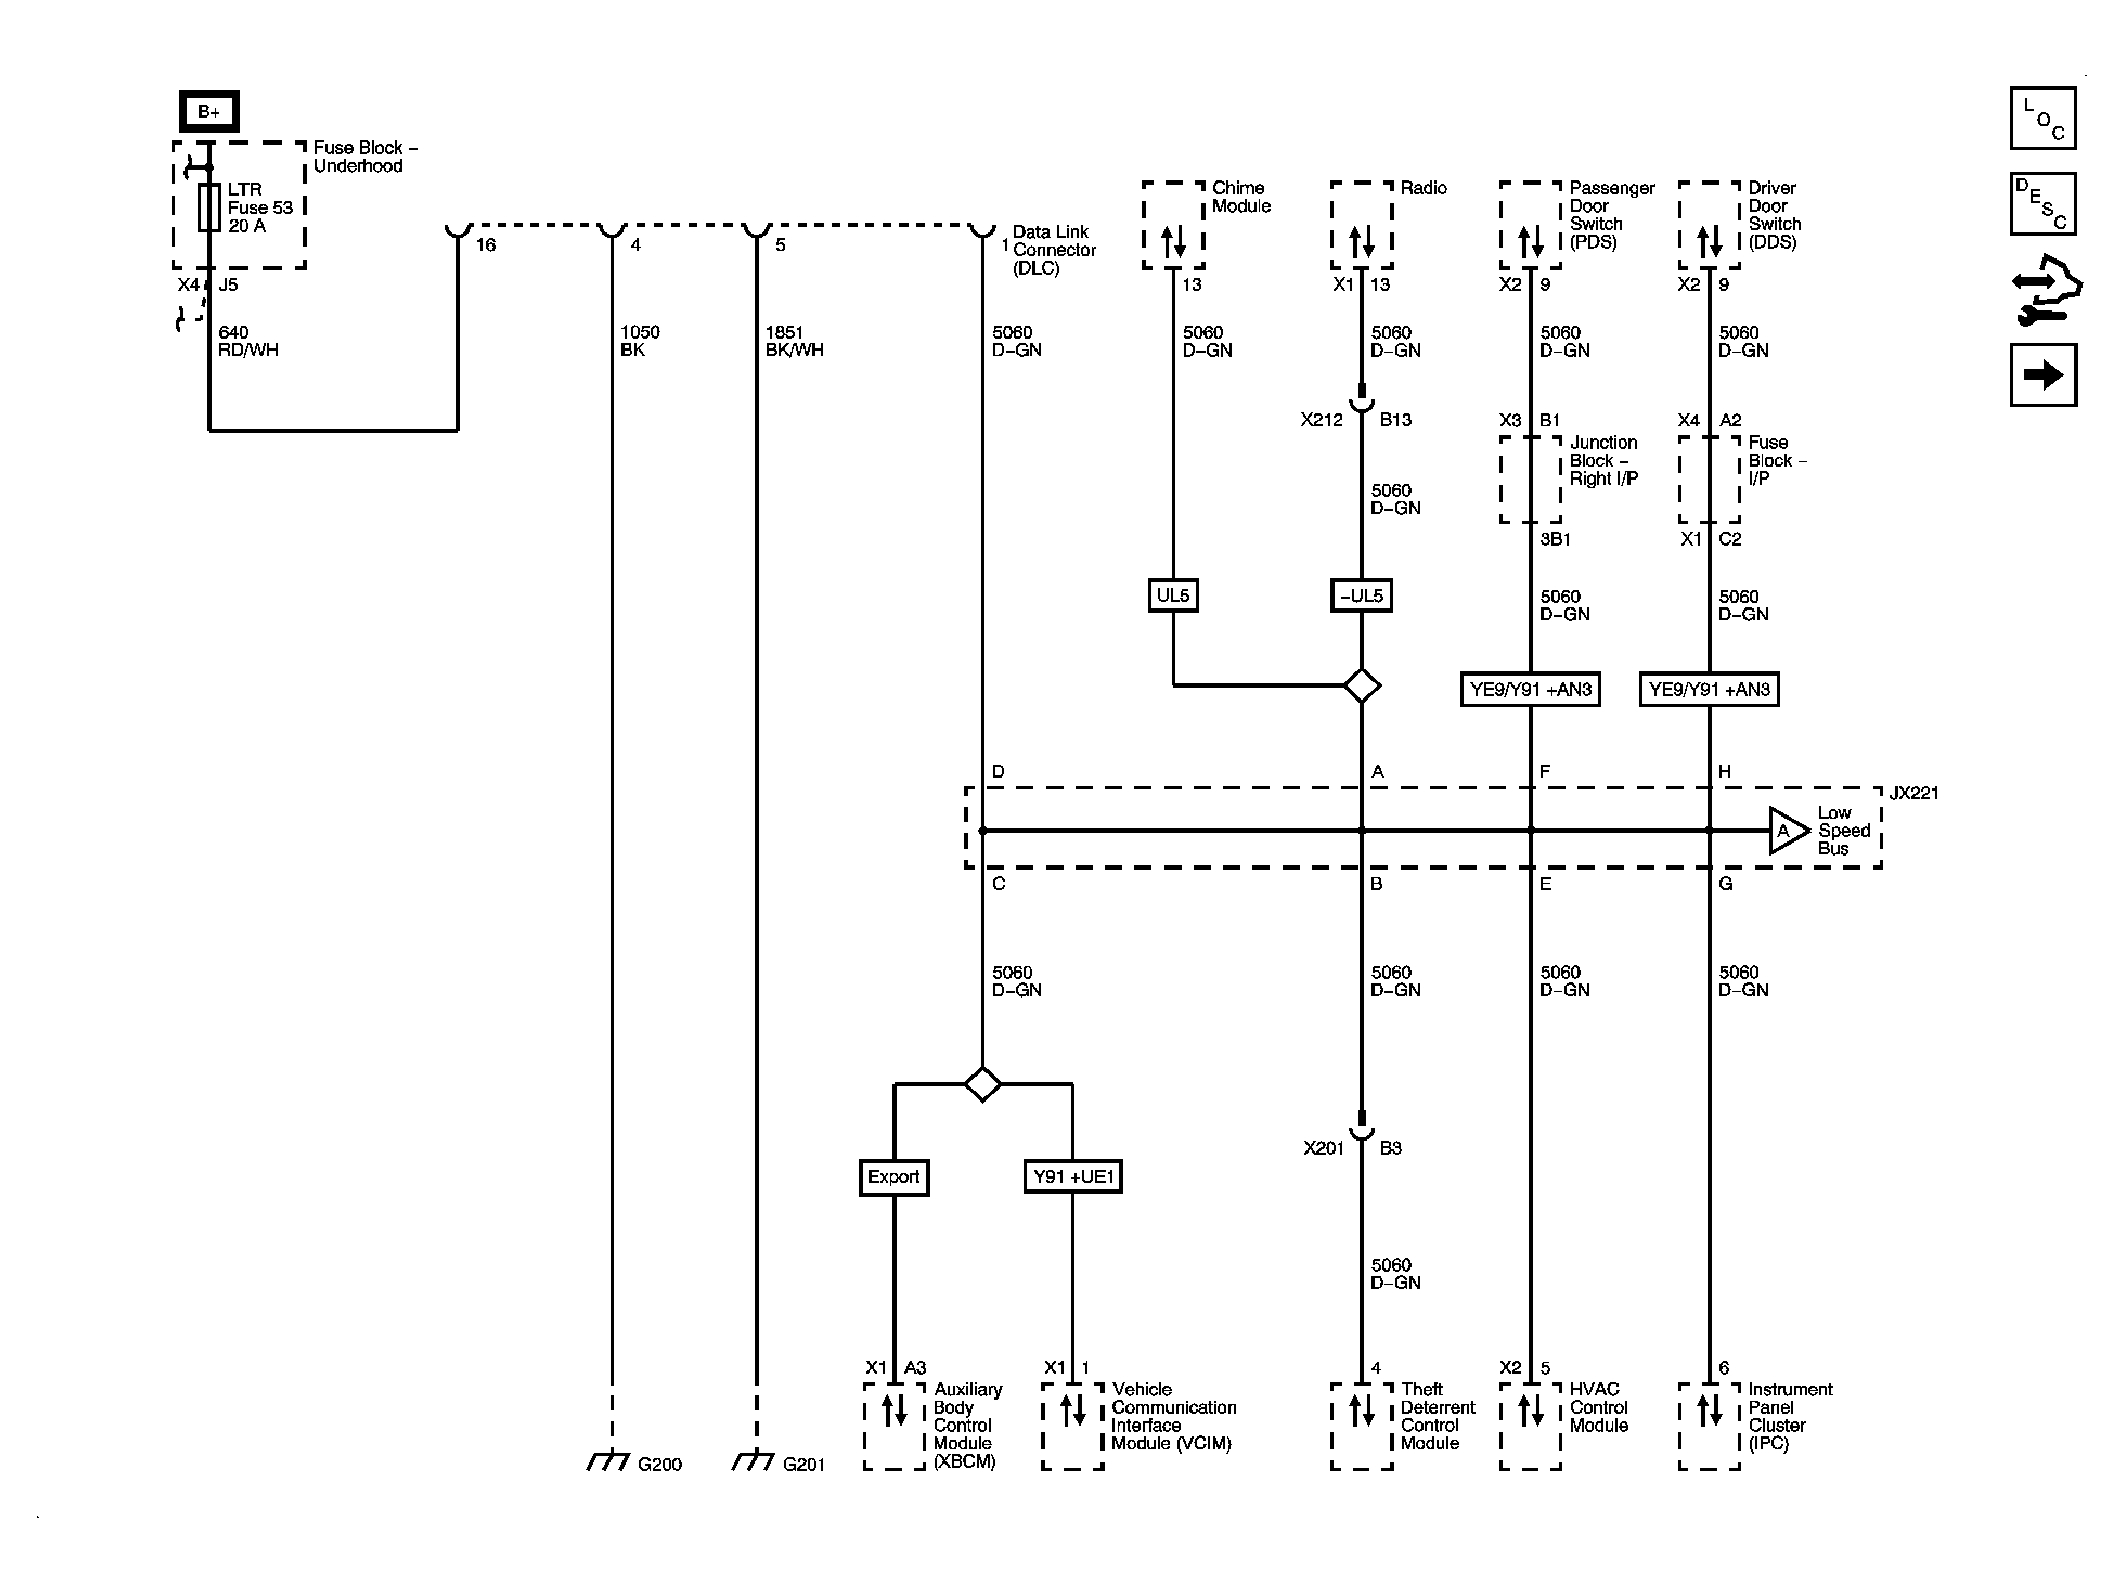 U0073 – Control Module – Data Bus Off – Troublecodes - Data Link Connector Wiring Diagram